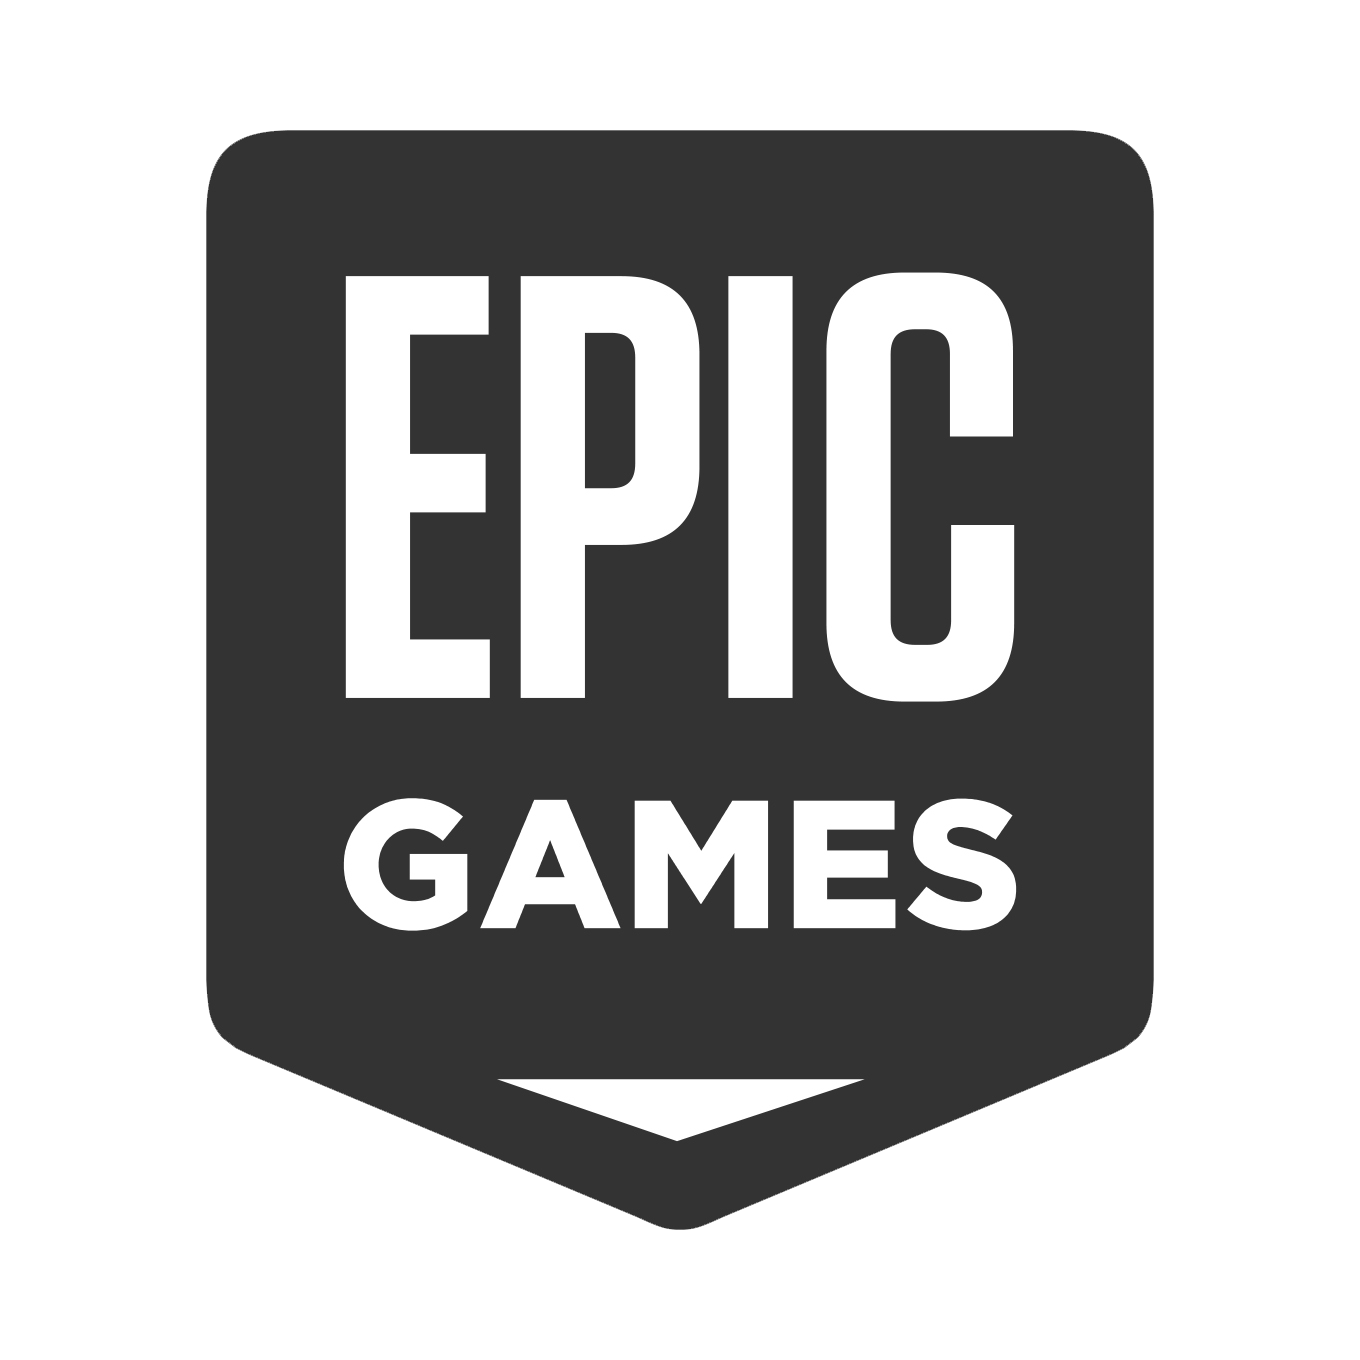 Epic Games Account Help: What To Do If Your Account Has Been Hacked